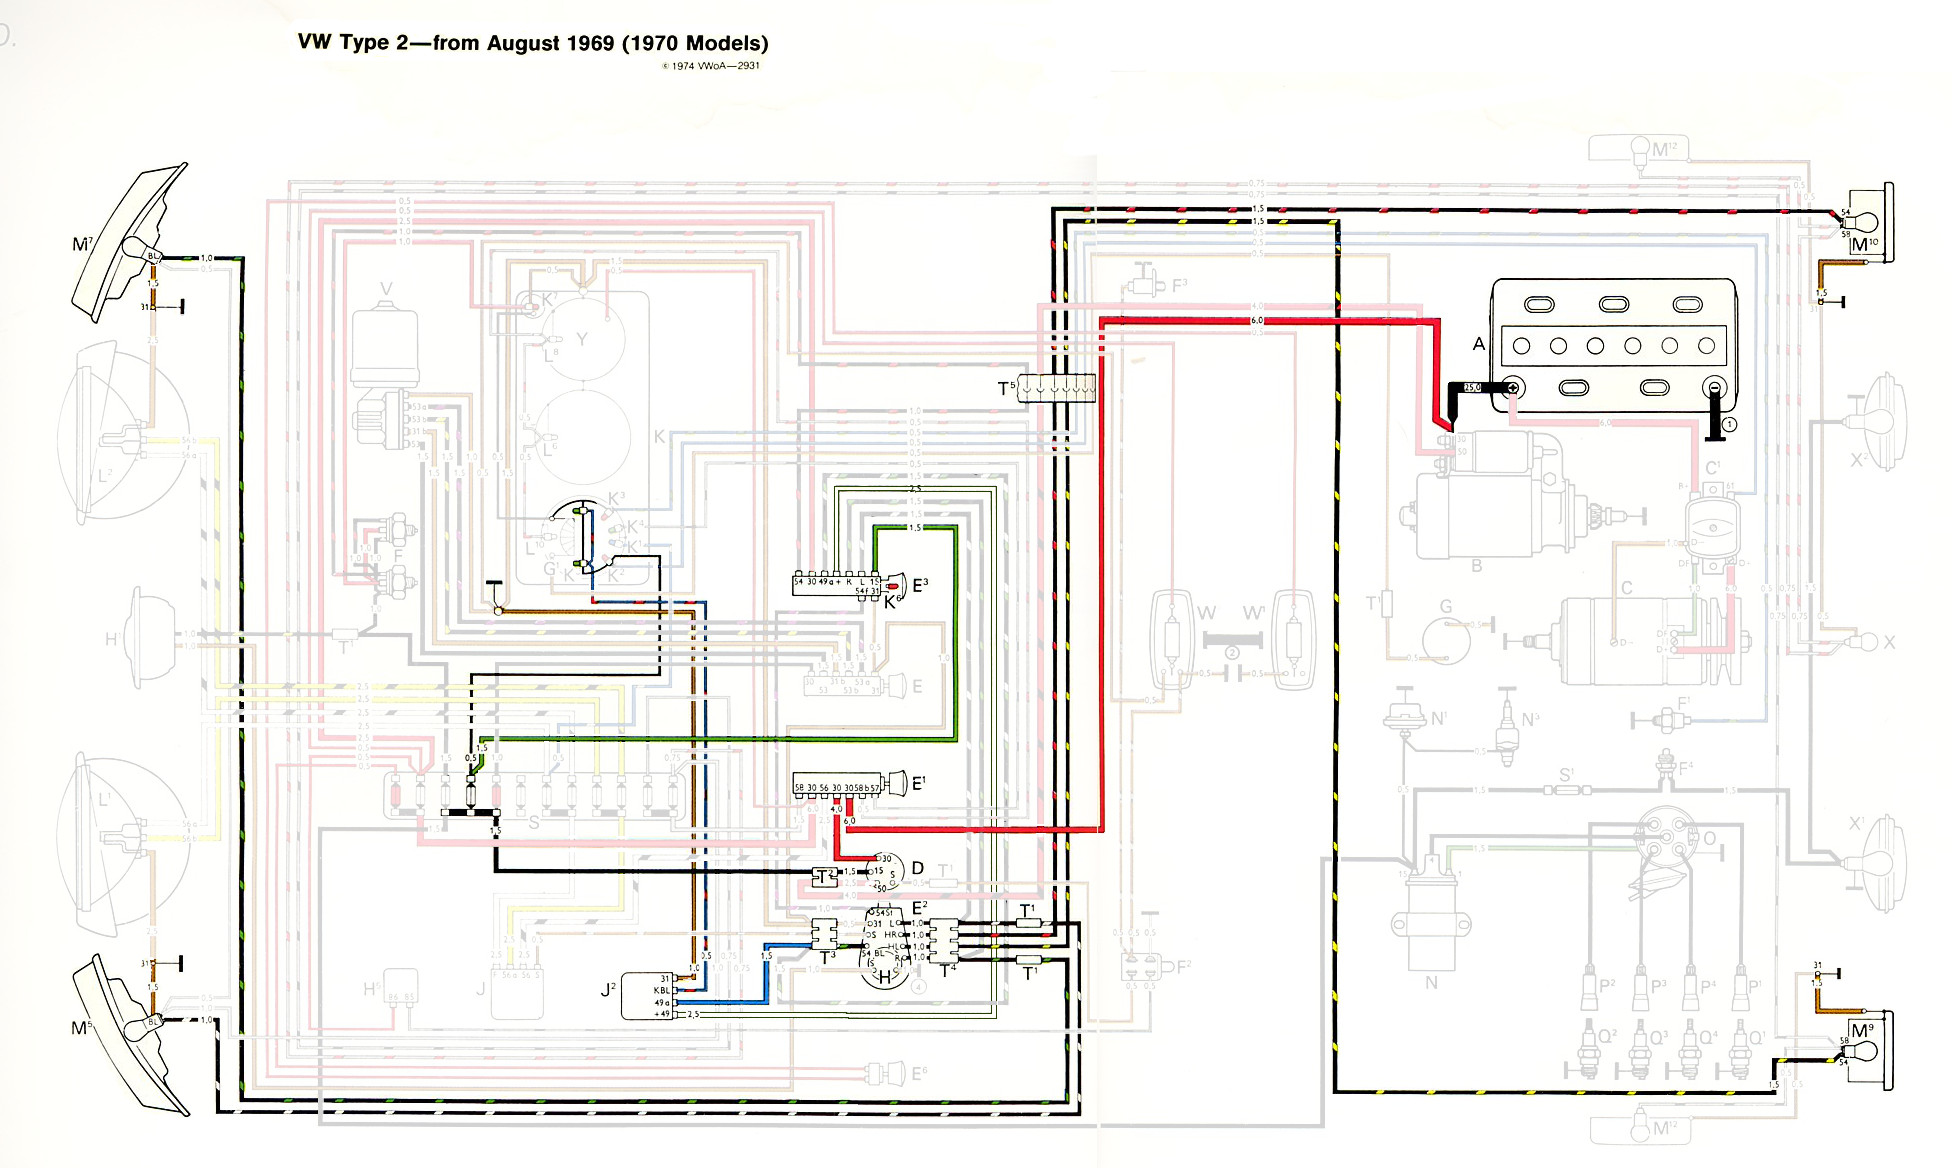 1970bus_signals 1970 vw beetle wiring diagram 1969 vw beetle turn signal wiring 1971 vw bus wiring diagram at aneh.co